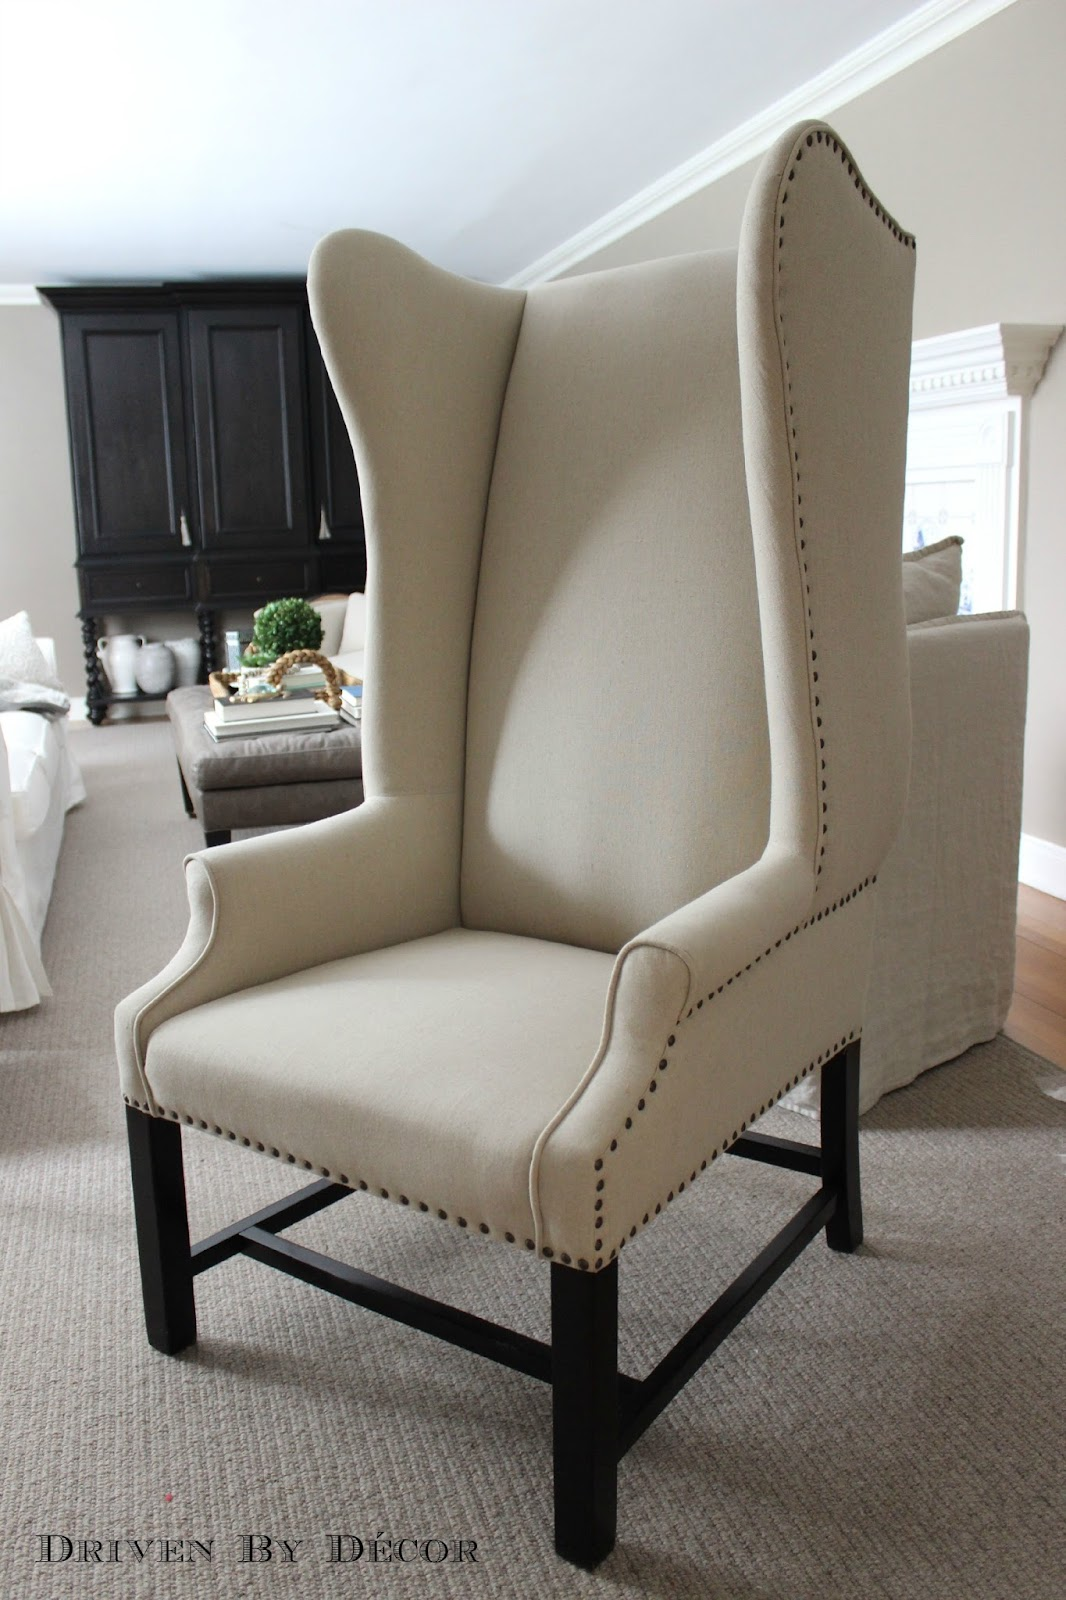 chair covers home goods dining table chairs only office remodel plans the deets driven by decor